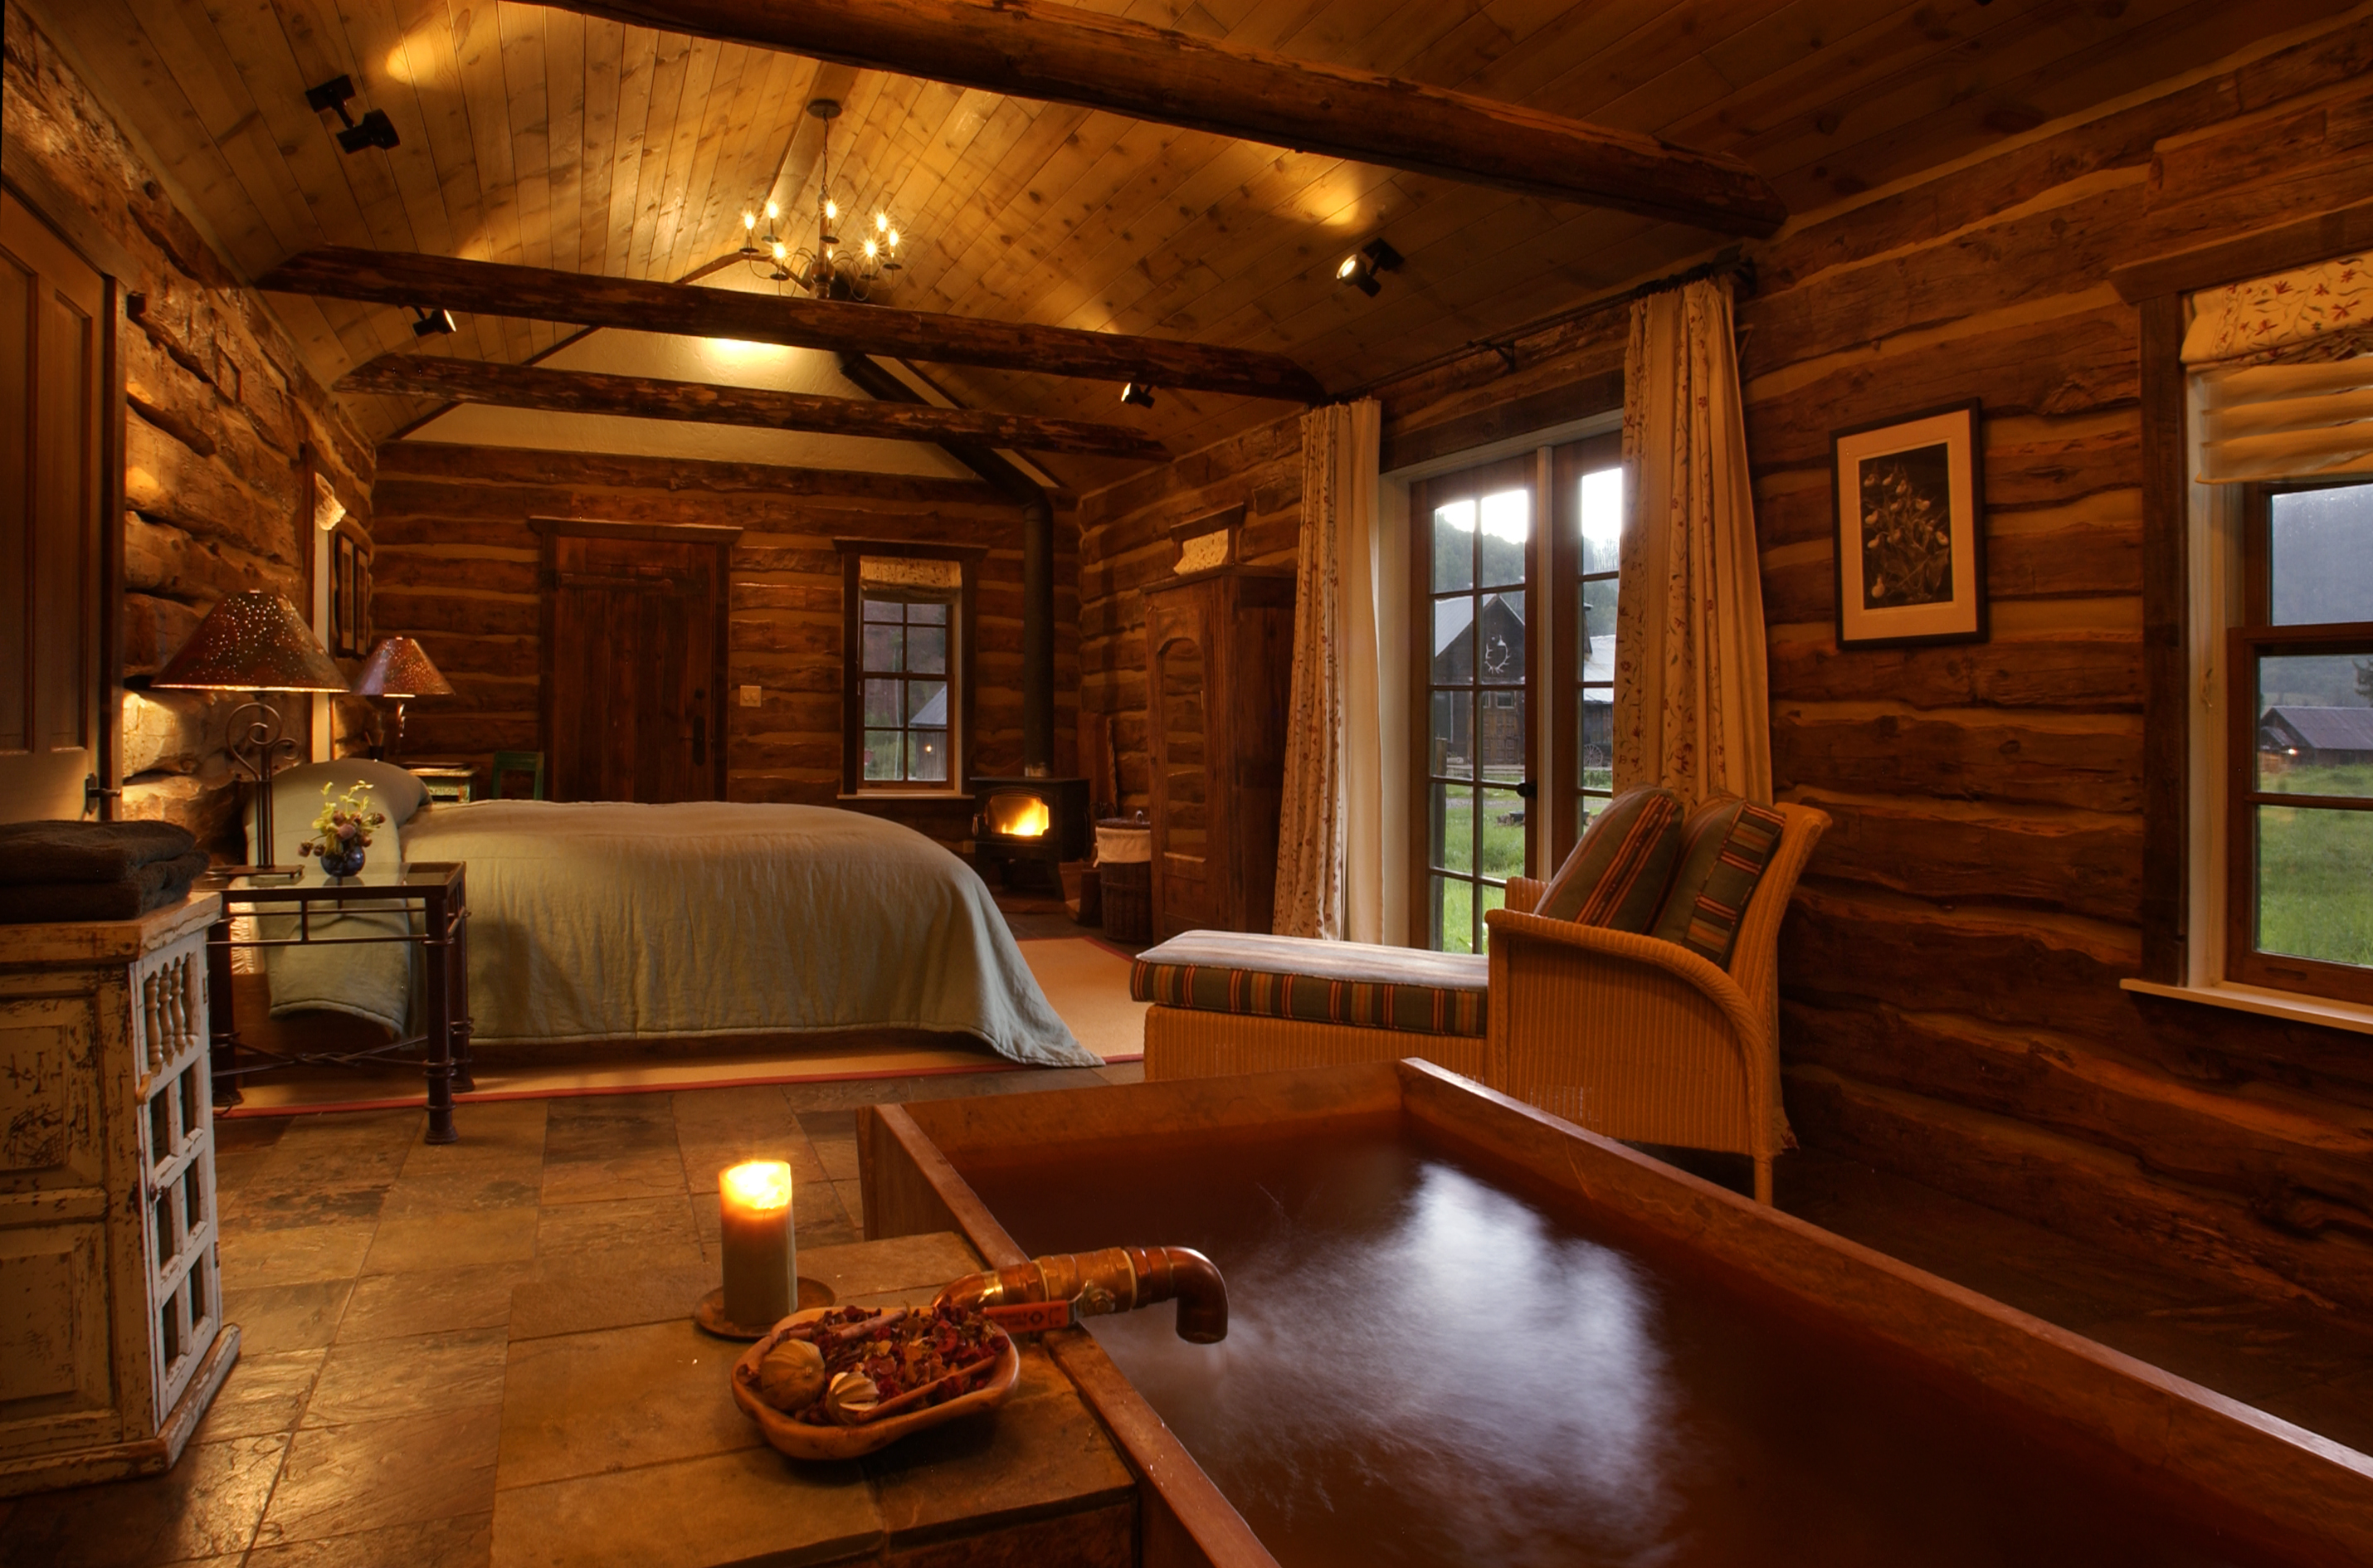 Remarkable Colorado Cabin Interiors 2860 x 1890 · 2928 kB · jpeg